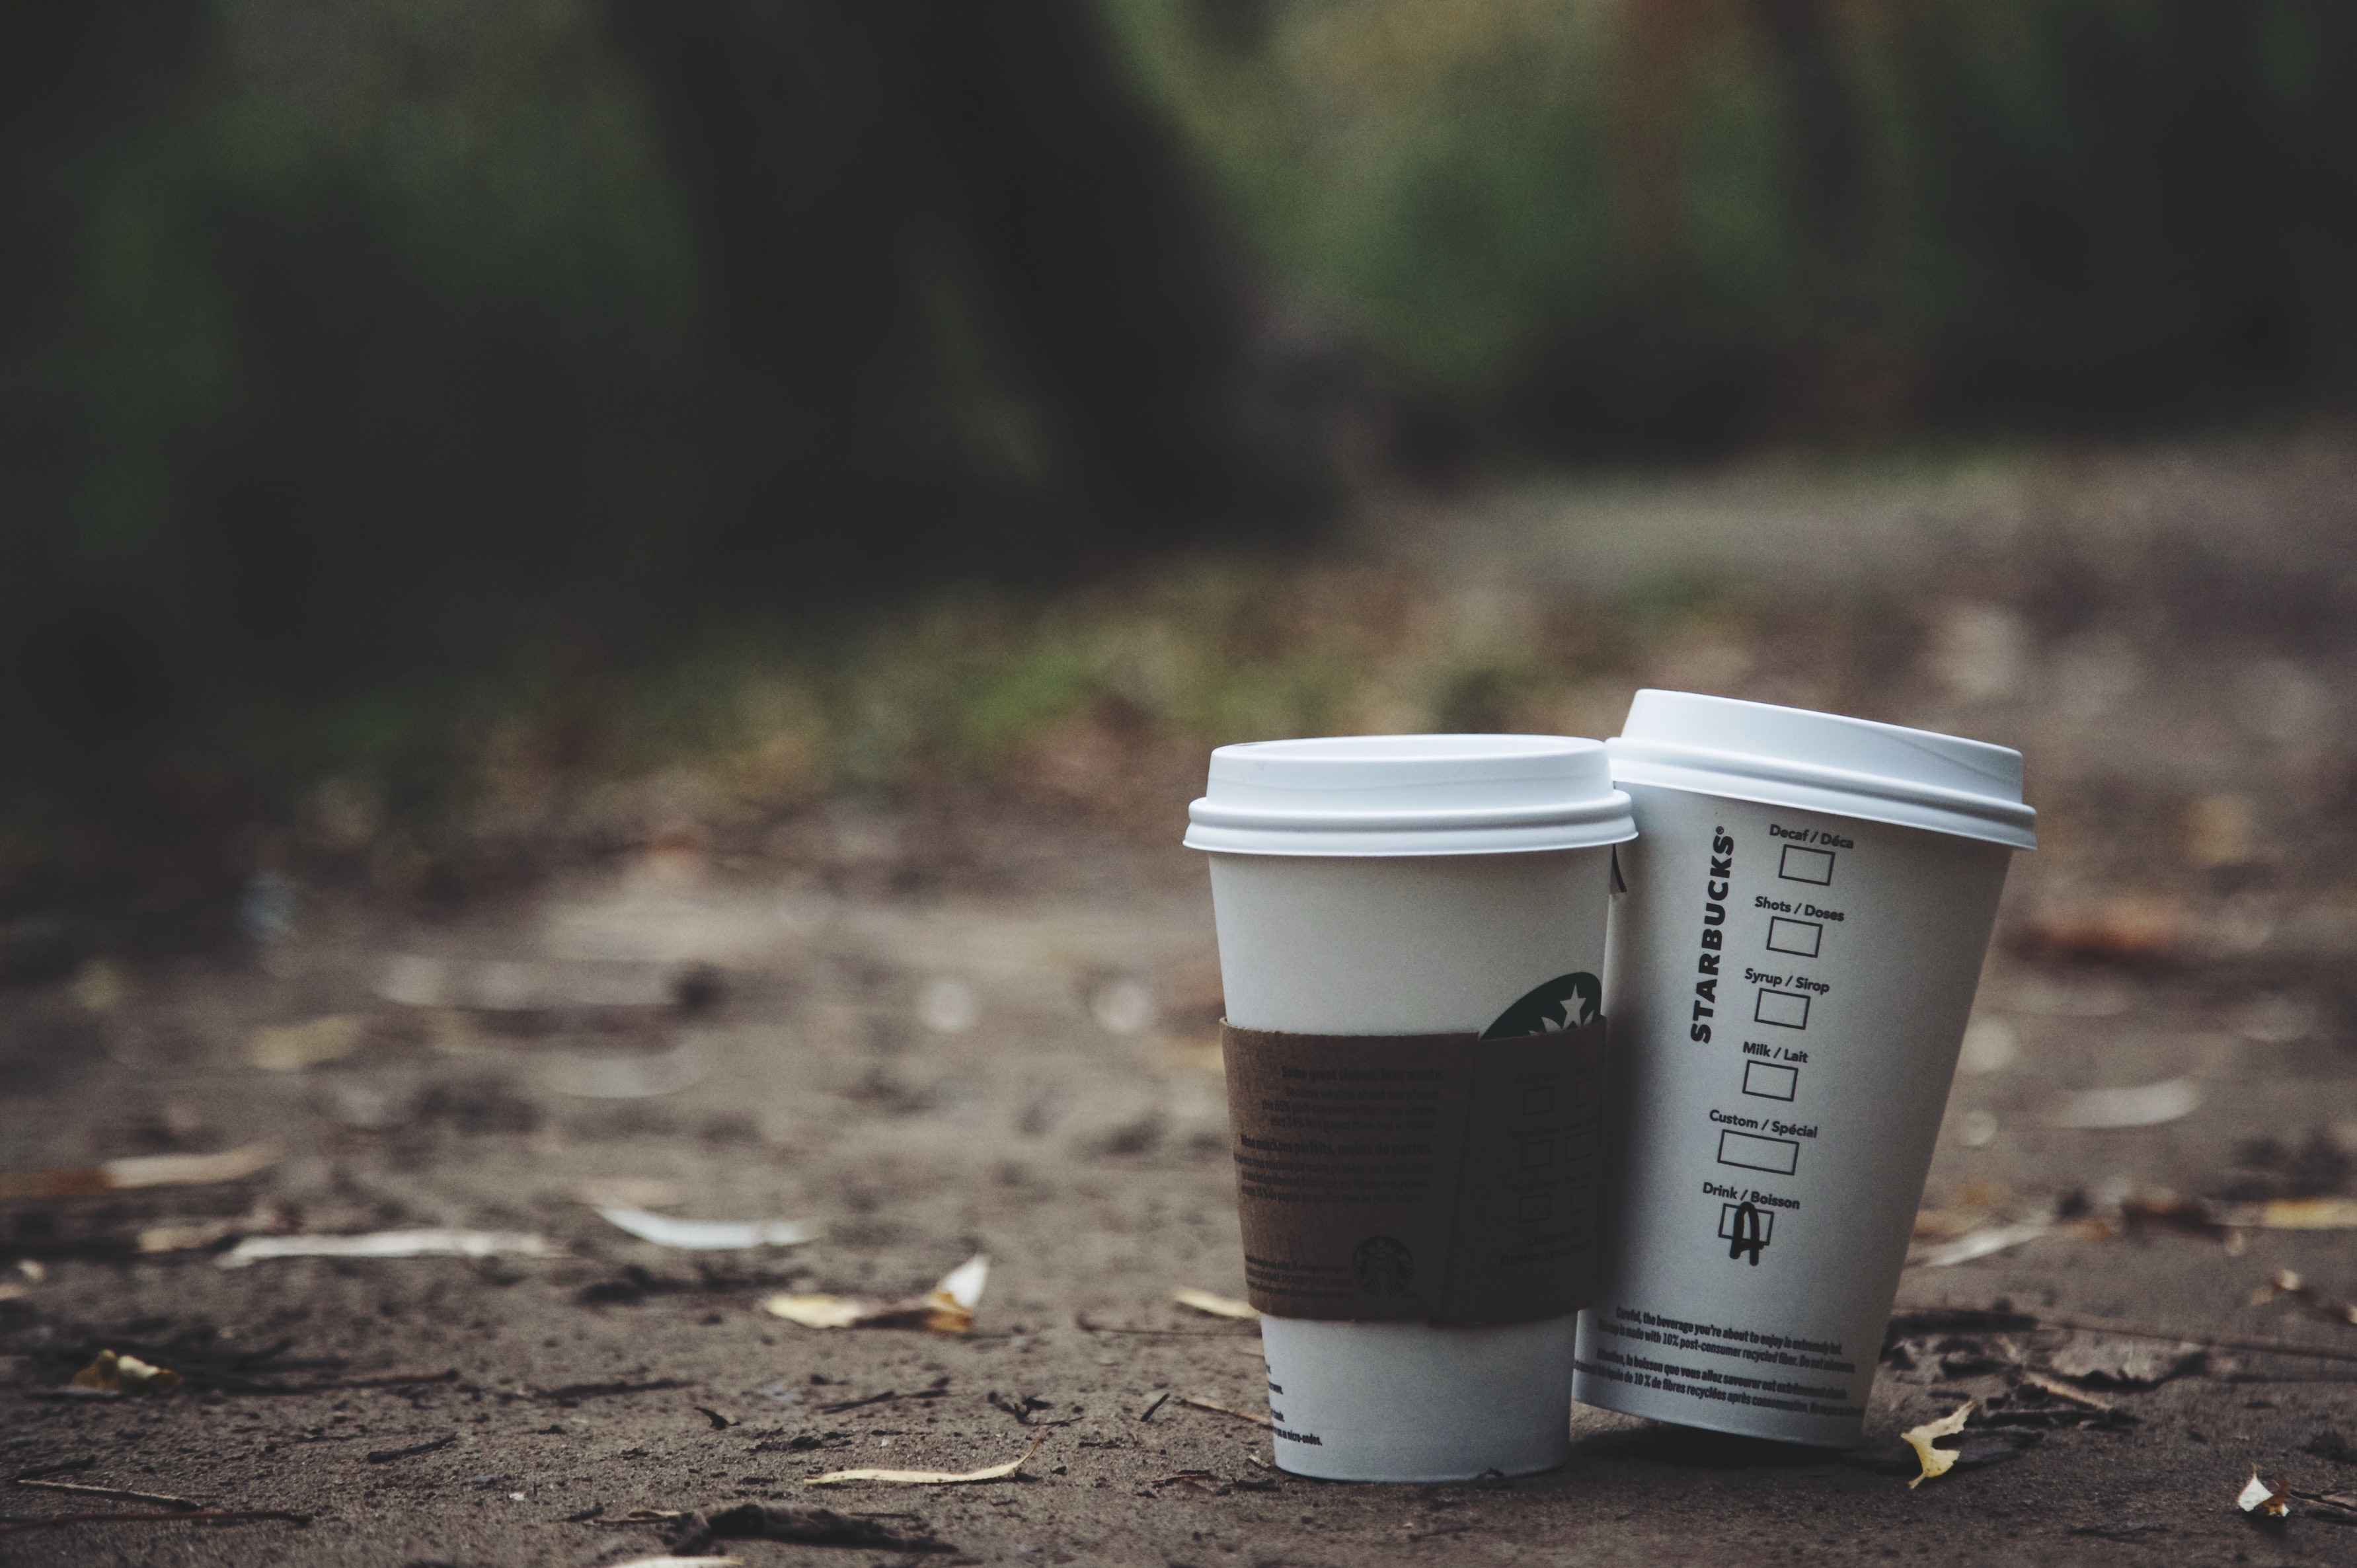 two white disposable cups place on brown soil